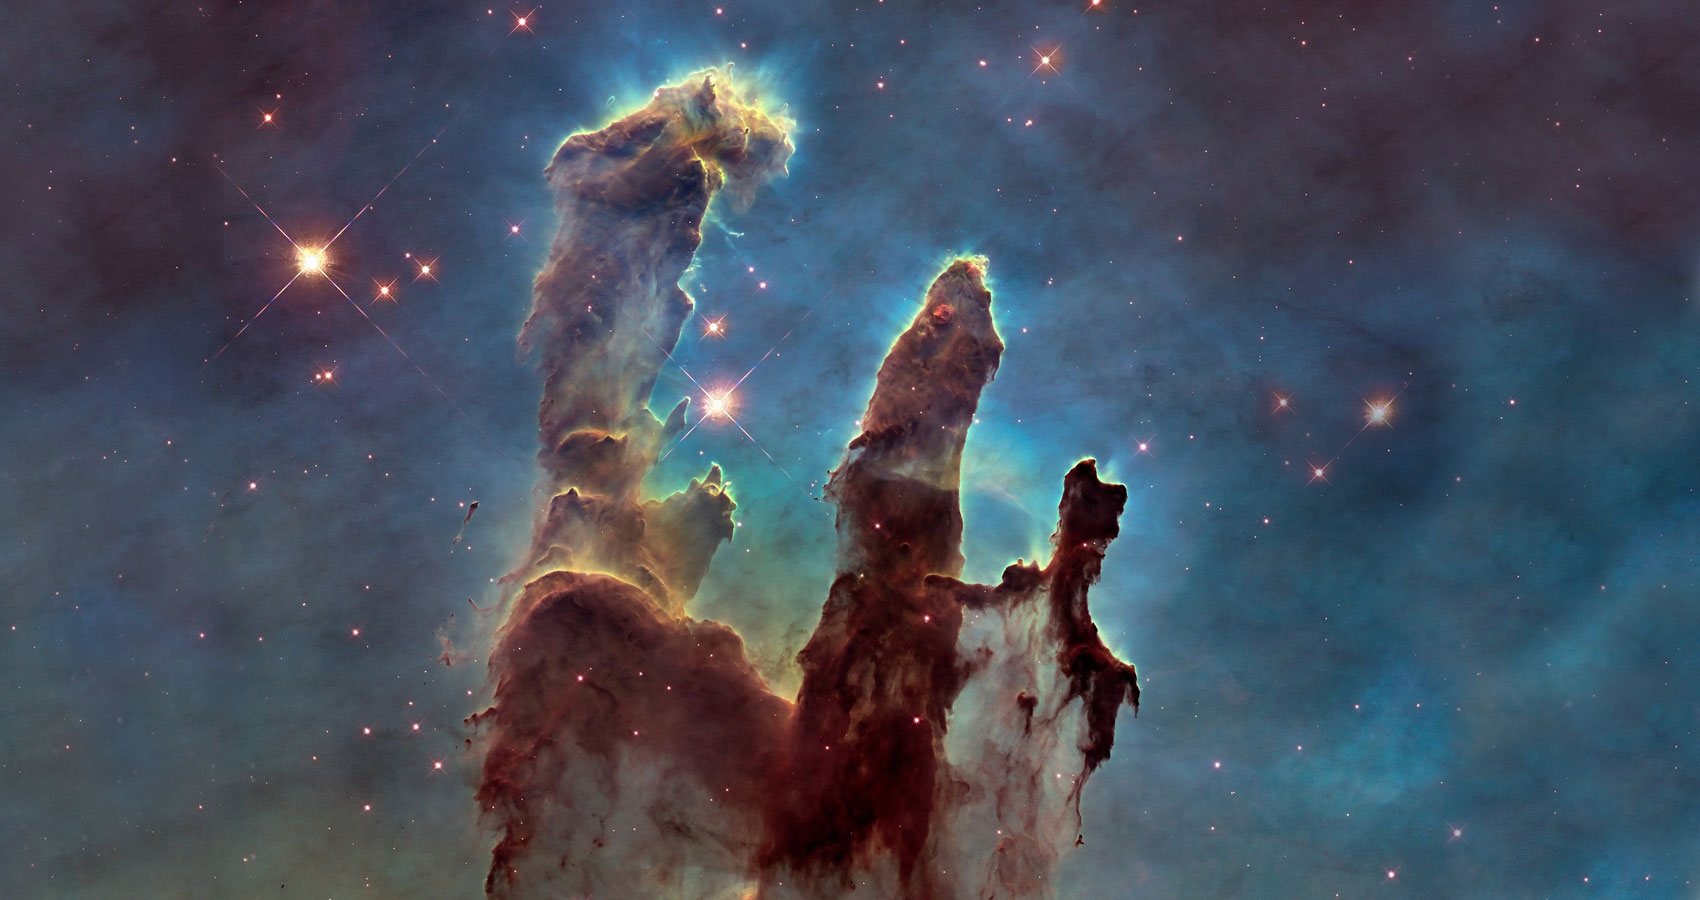 Pillars of Creation written by David Molnar at Spillwords.com